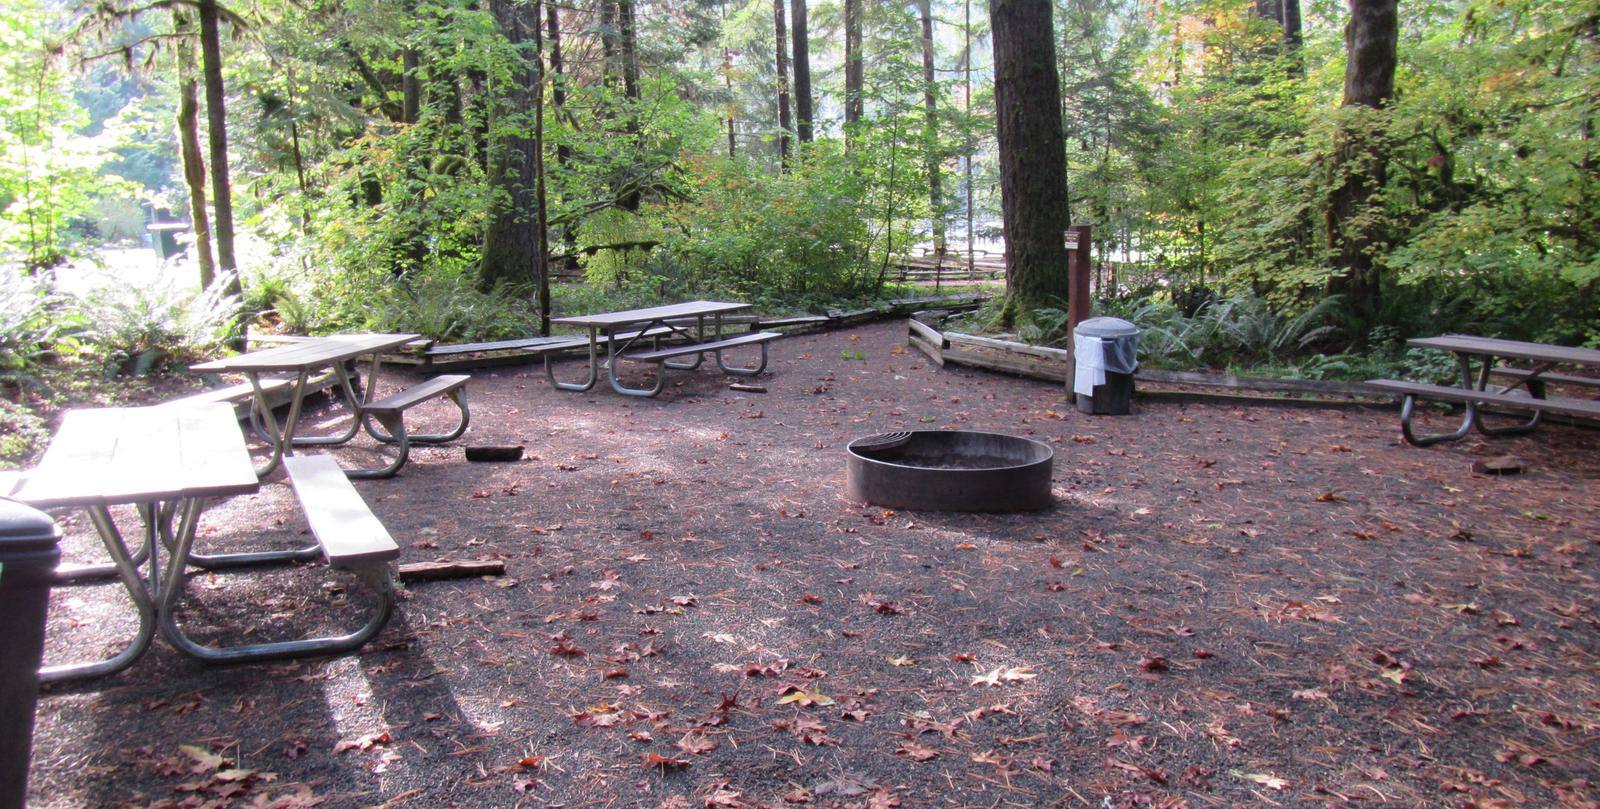 Group fire area with multiple picnic tables